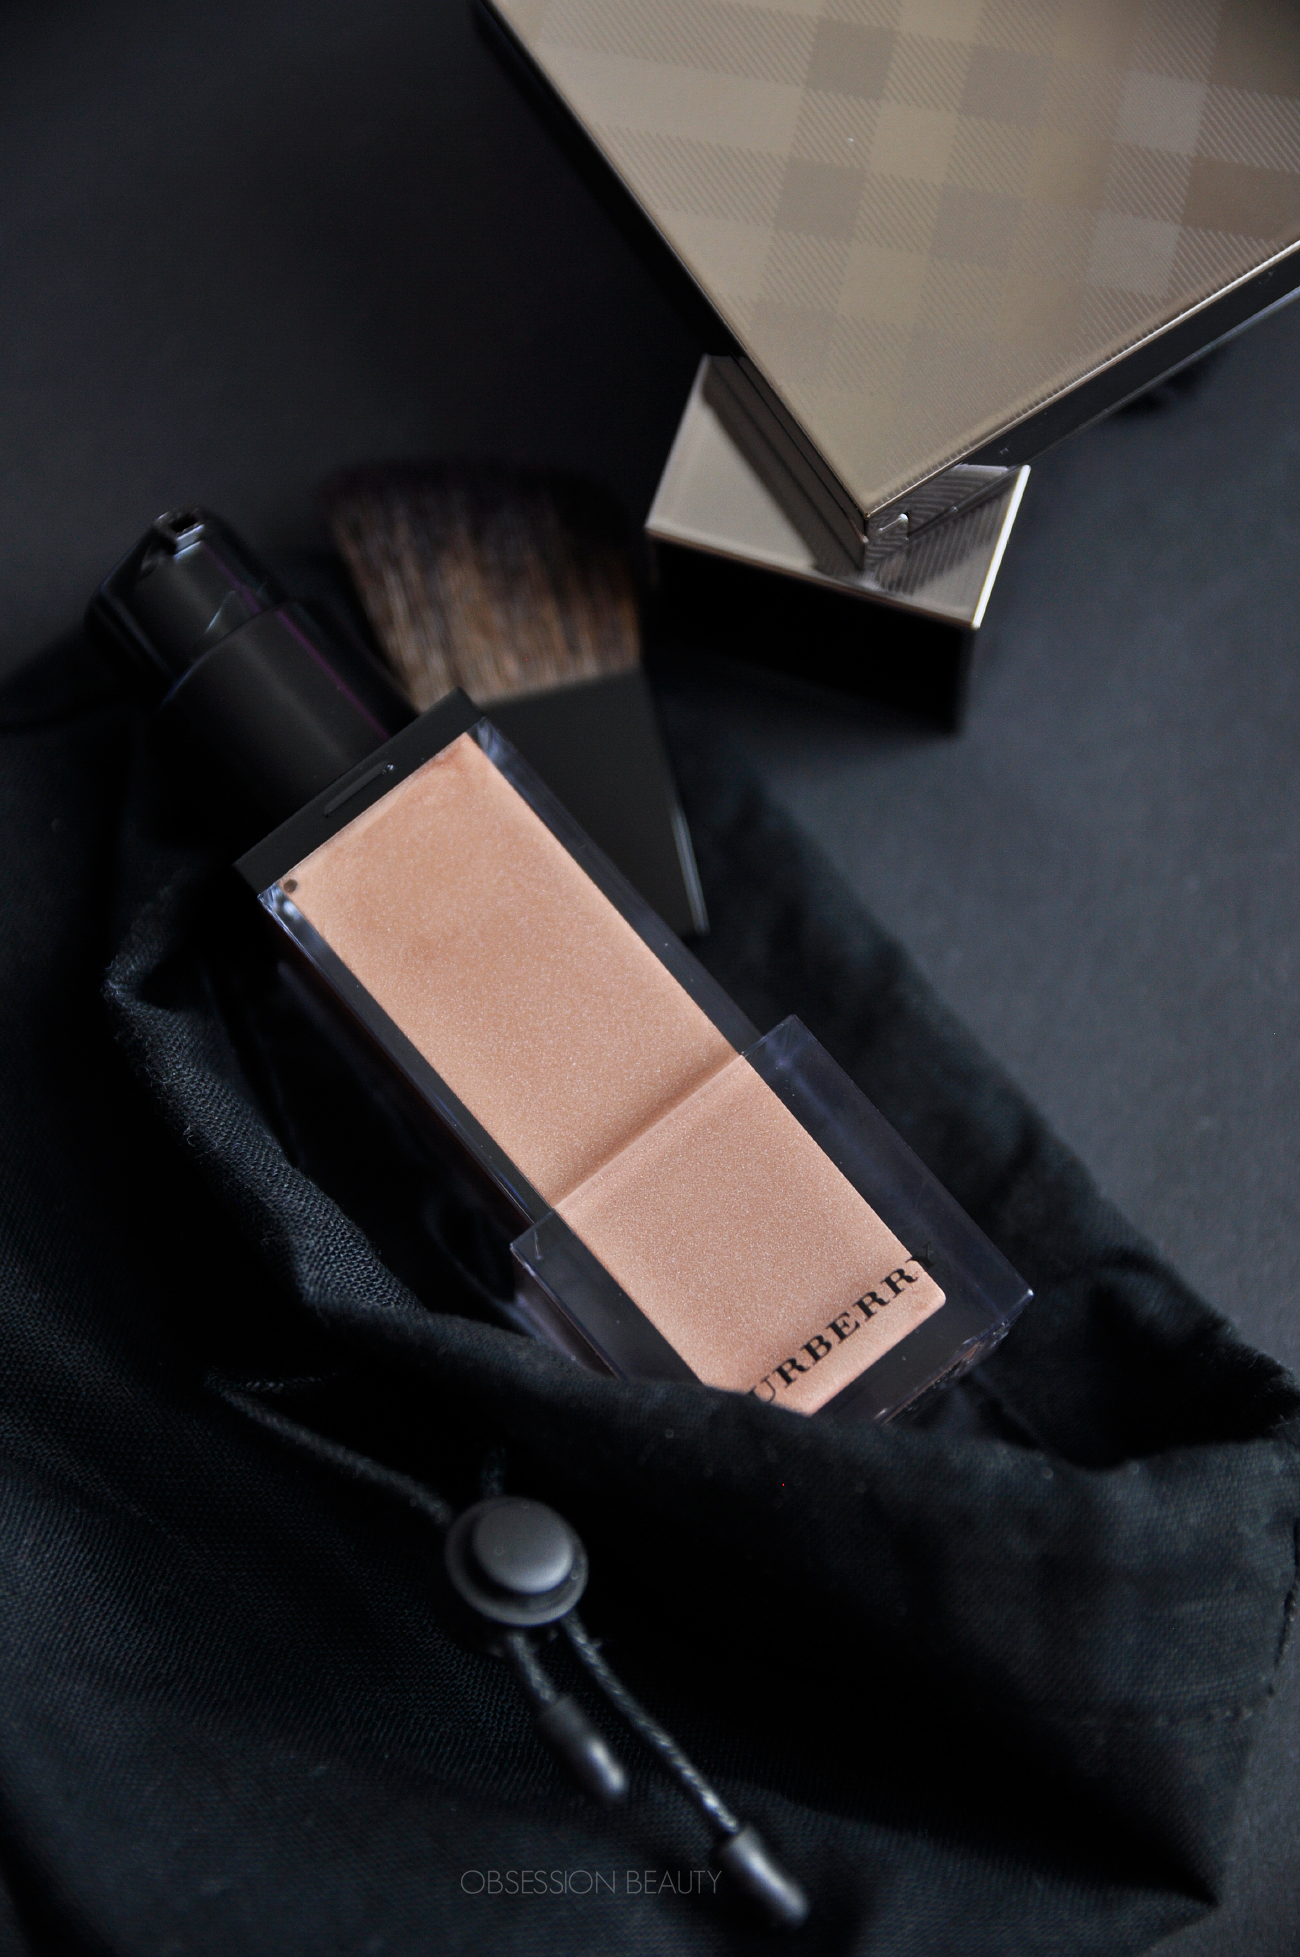 Burberry-Fresh-Glow-Luminous-Base3